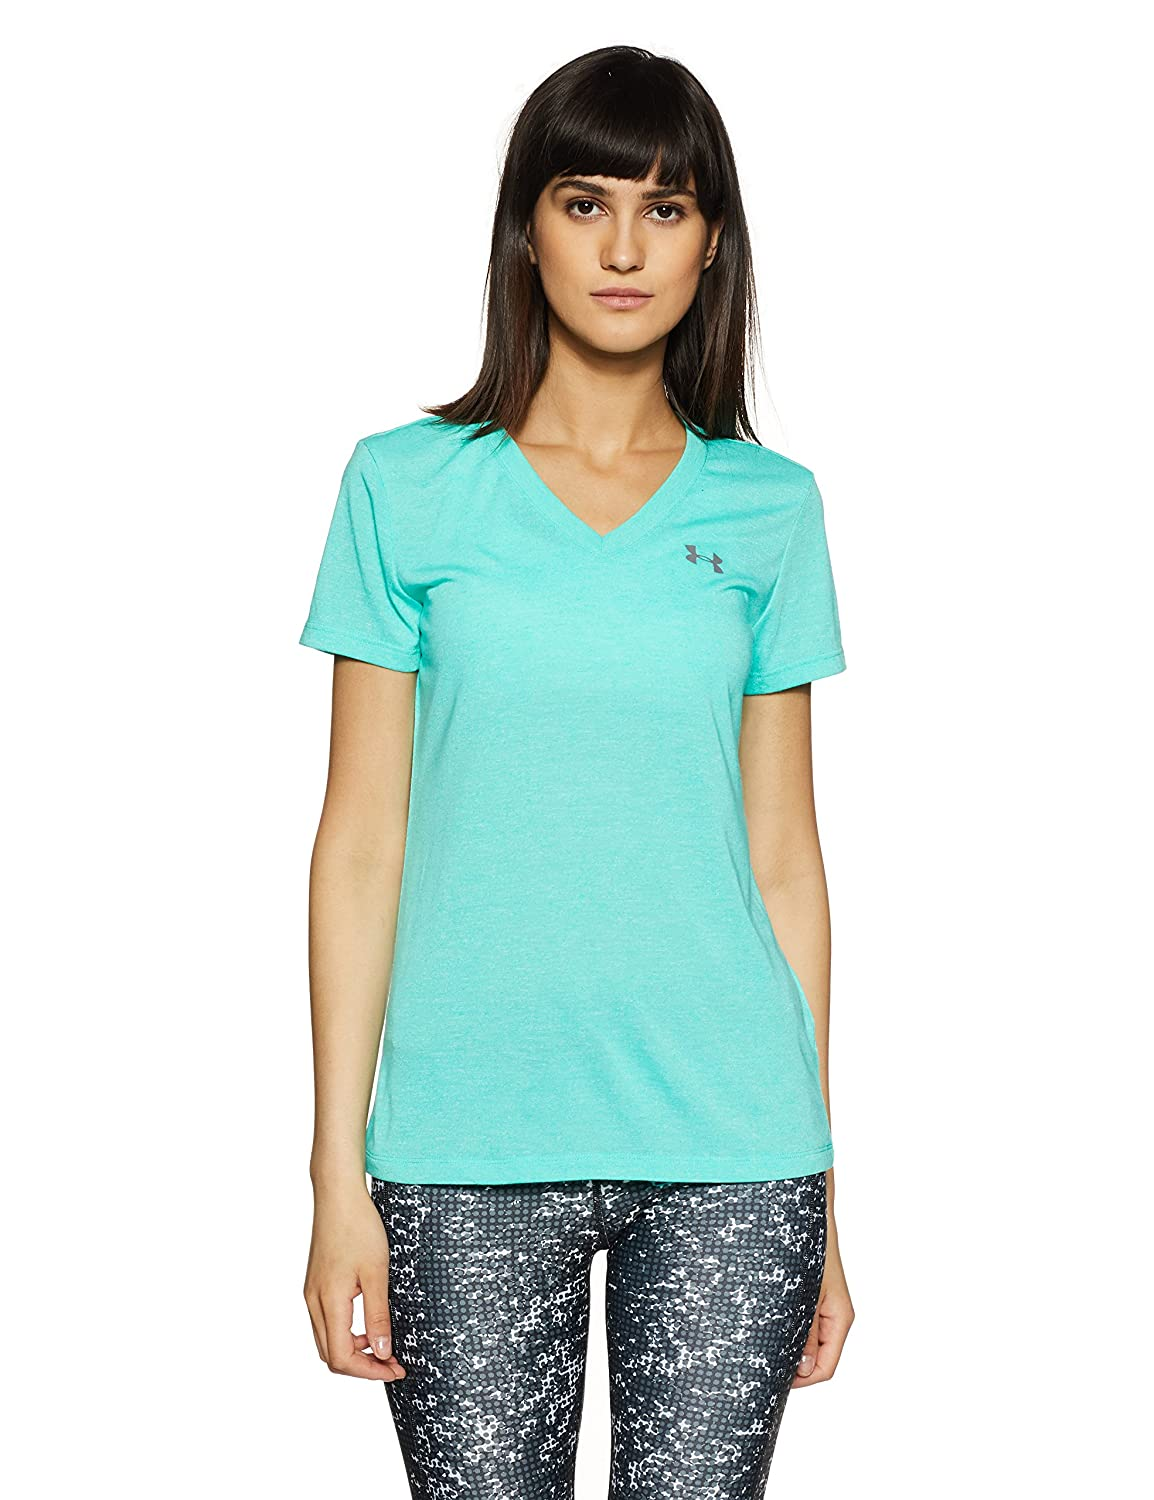 Under Armour Women's Threadborne Train Twist V Neck